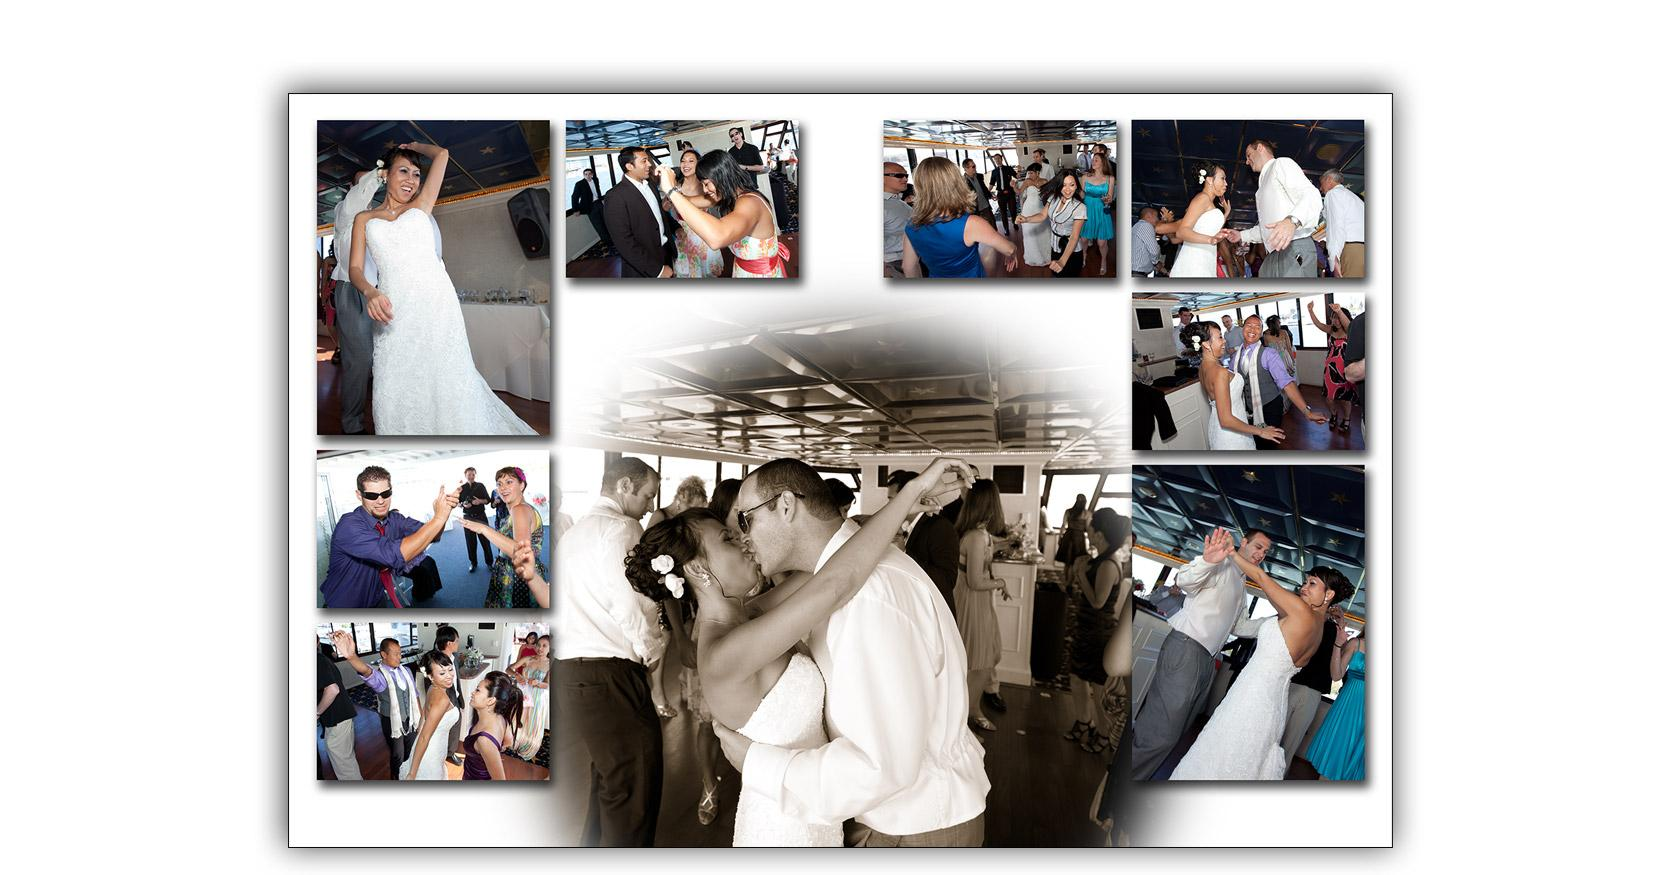 San Francisco Bay yacht boat wedding cruise Commodore Events Merlot photography album 12